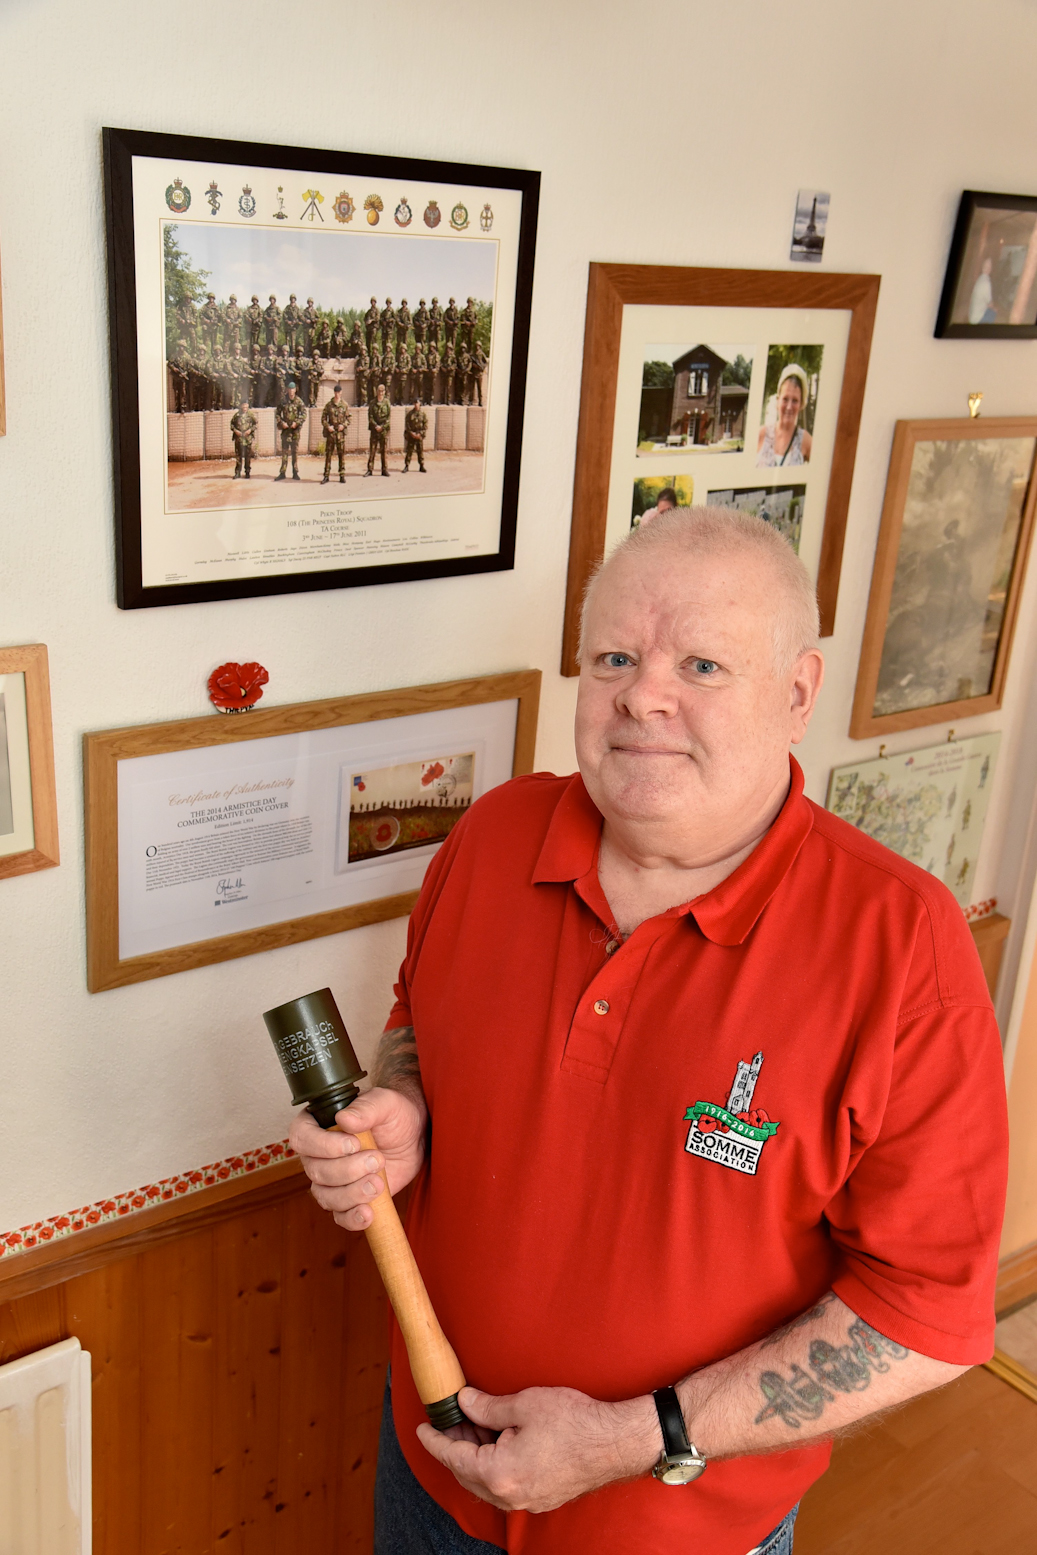 Skelmersdale man to lay flowers on grave of Somme victim Robert Margison 100 years after his death